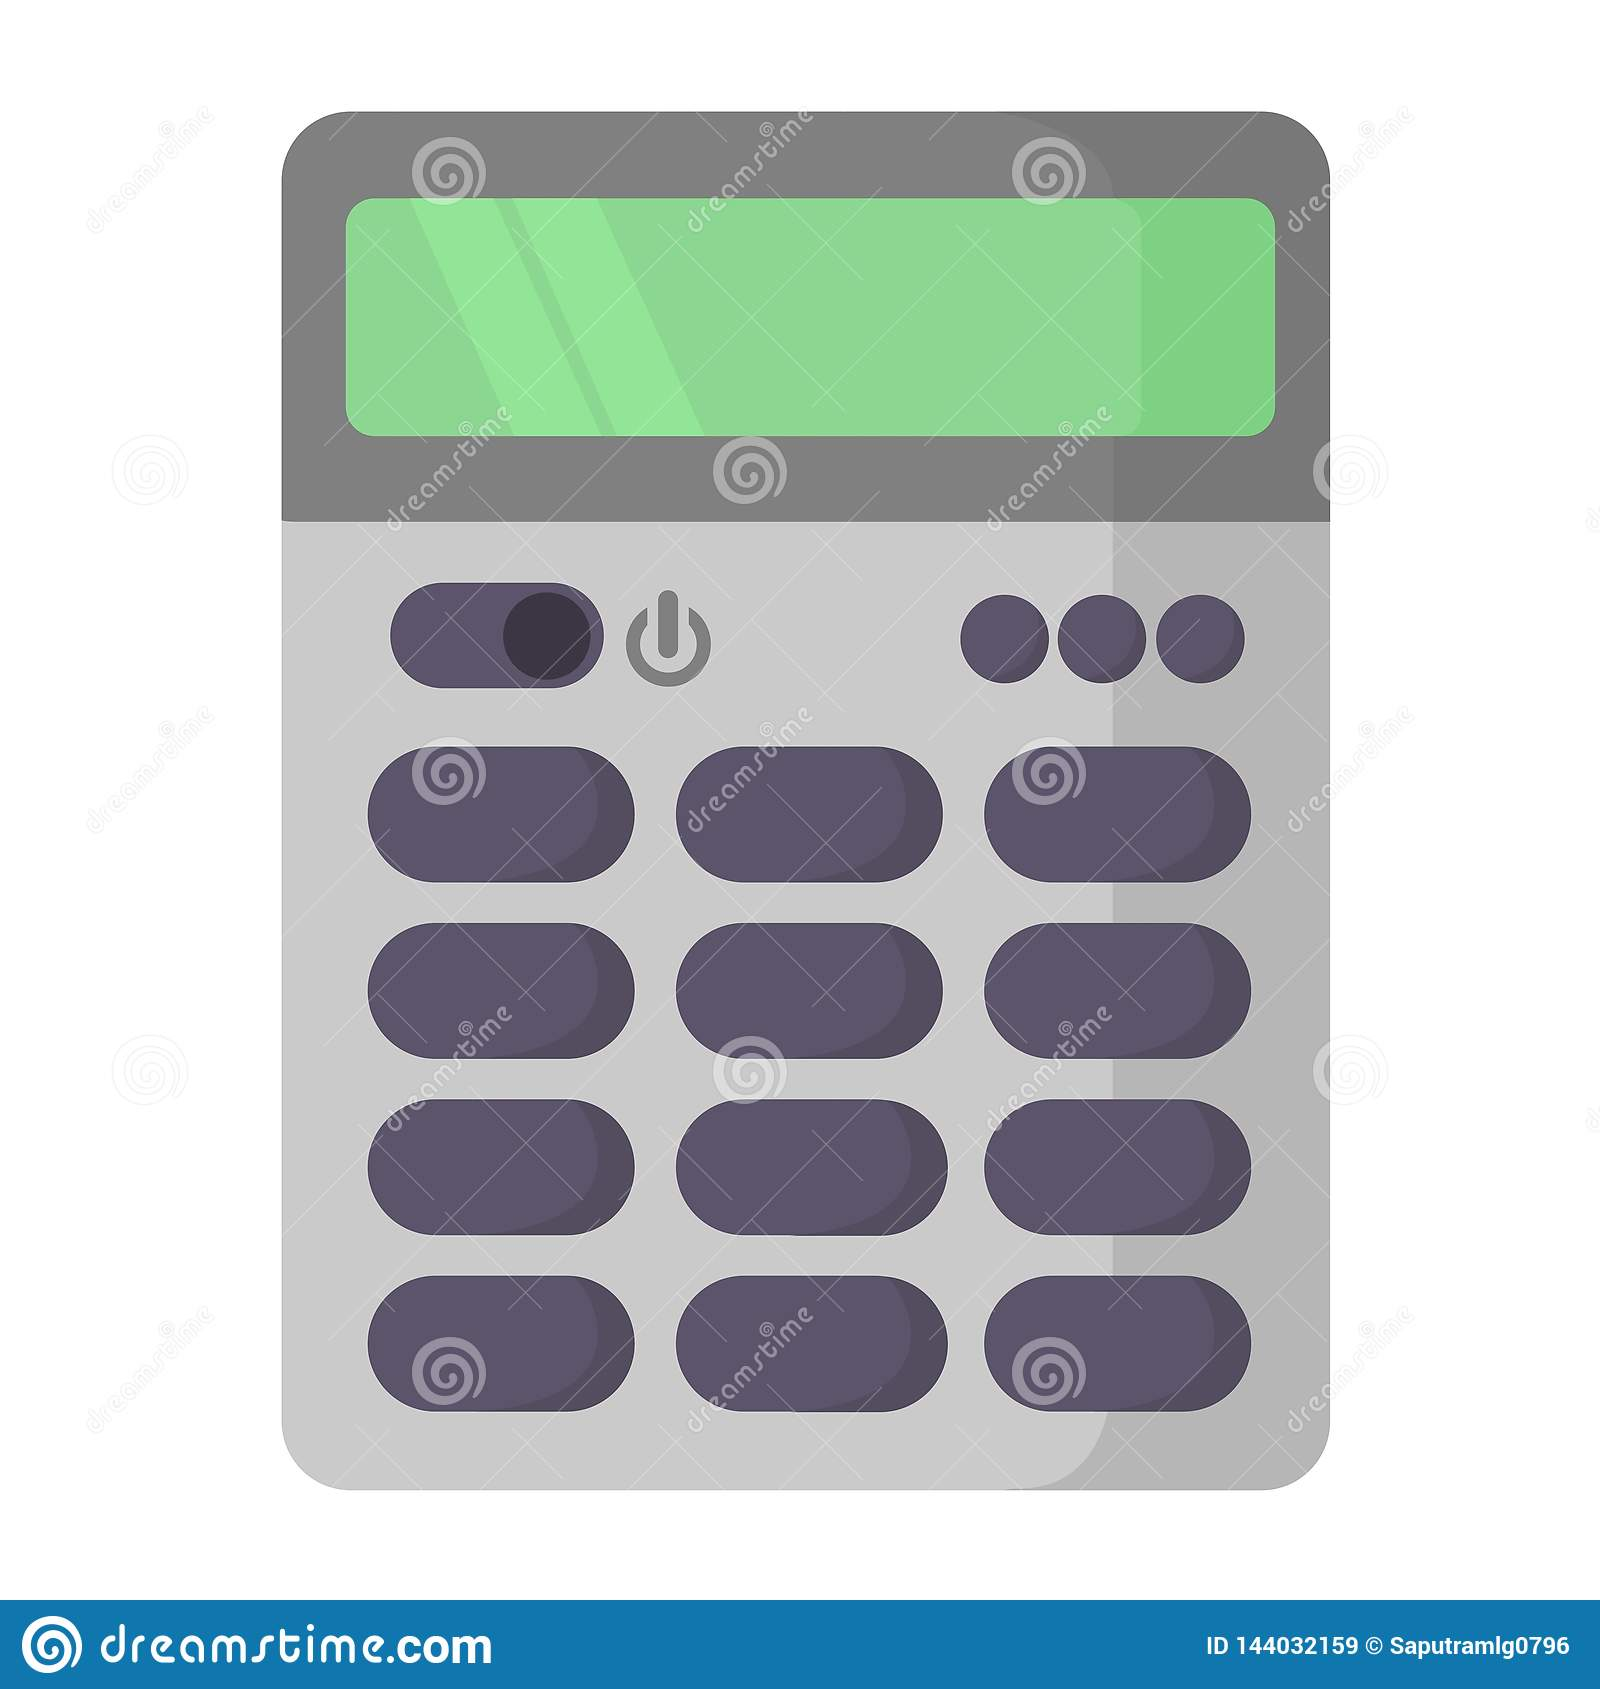 Simple calculator flat icon